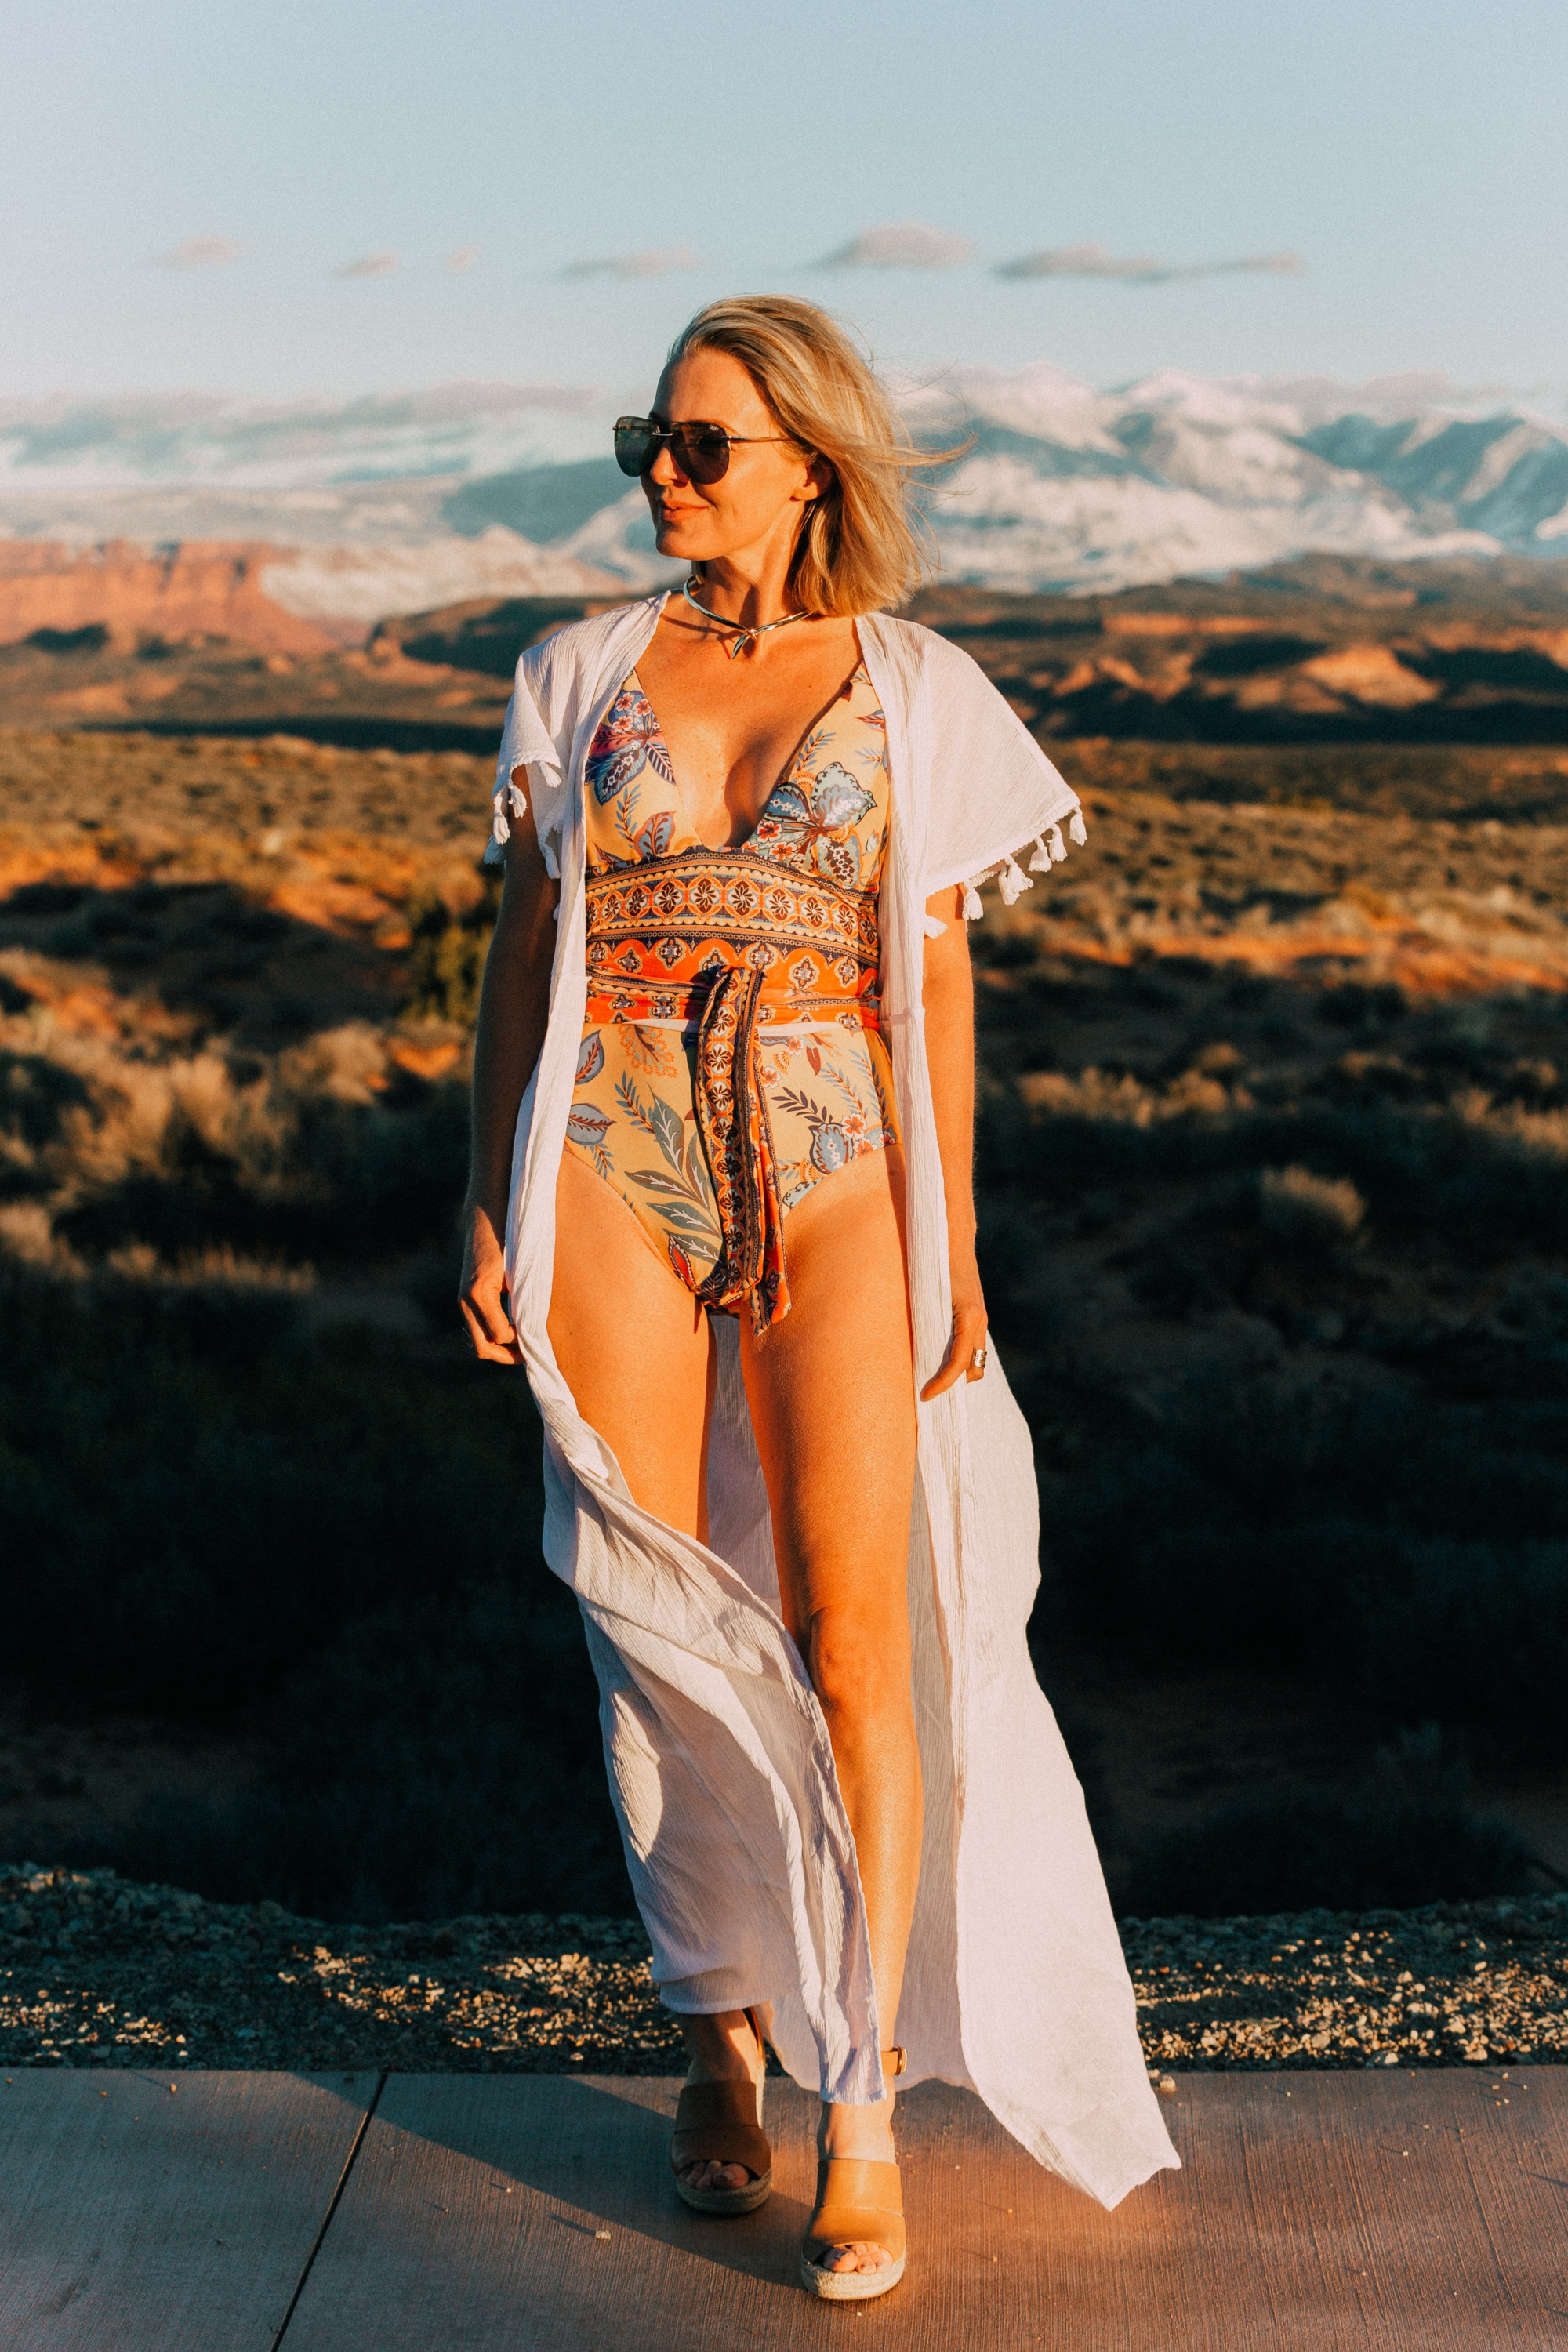 Full Coverage one piece paisley swimsuit by becca for women over 40 years old with Eddie Bargo choker necklace, Treasure & Bond espadrille sandals, and a white tassel kimono from Asos in Moab, Utah